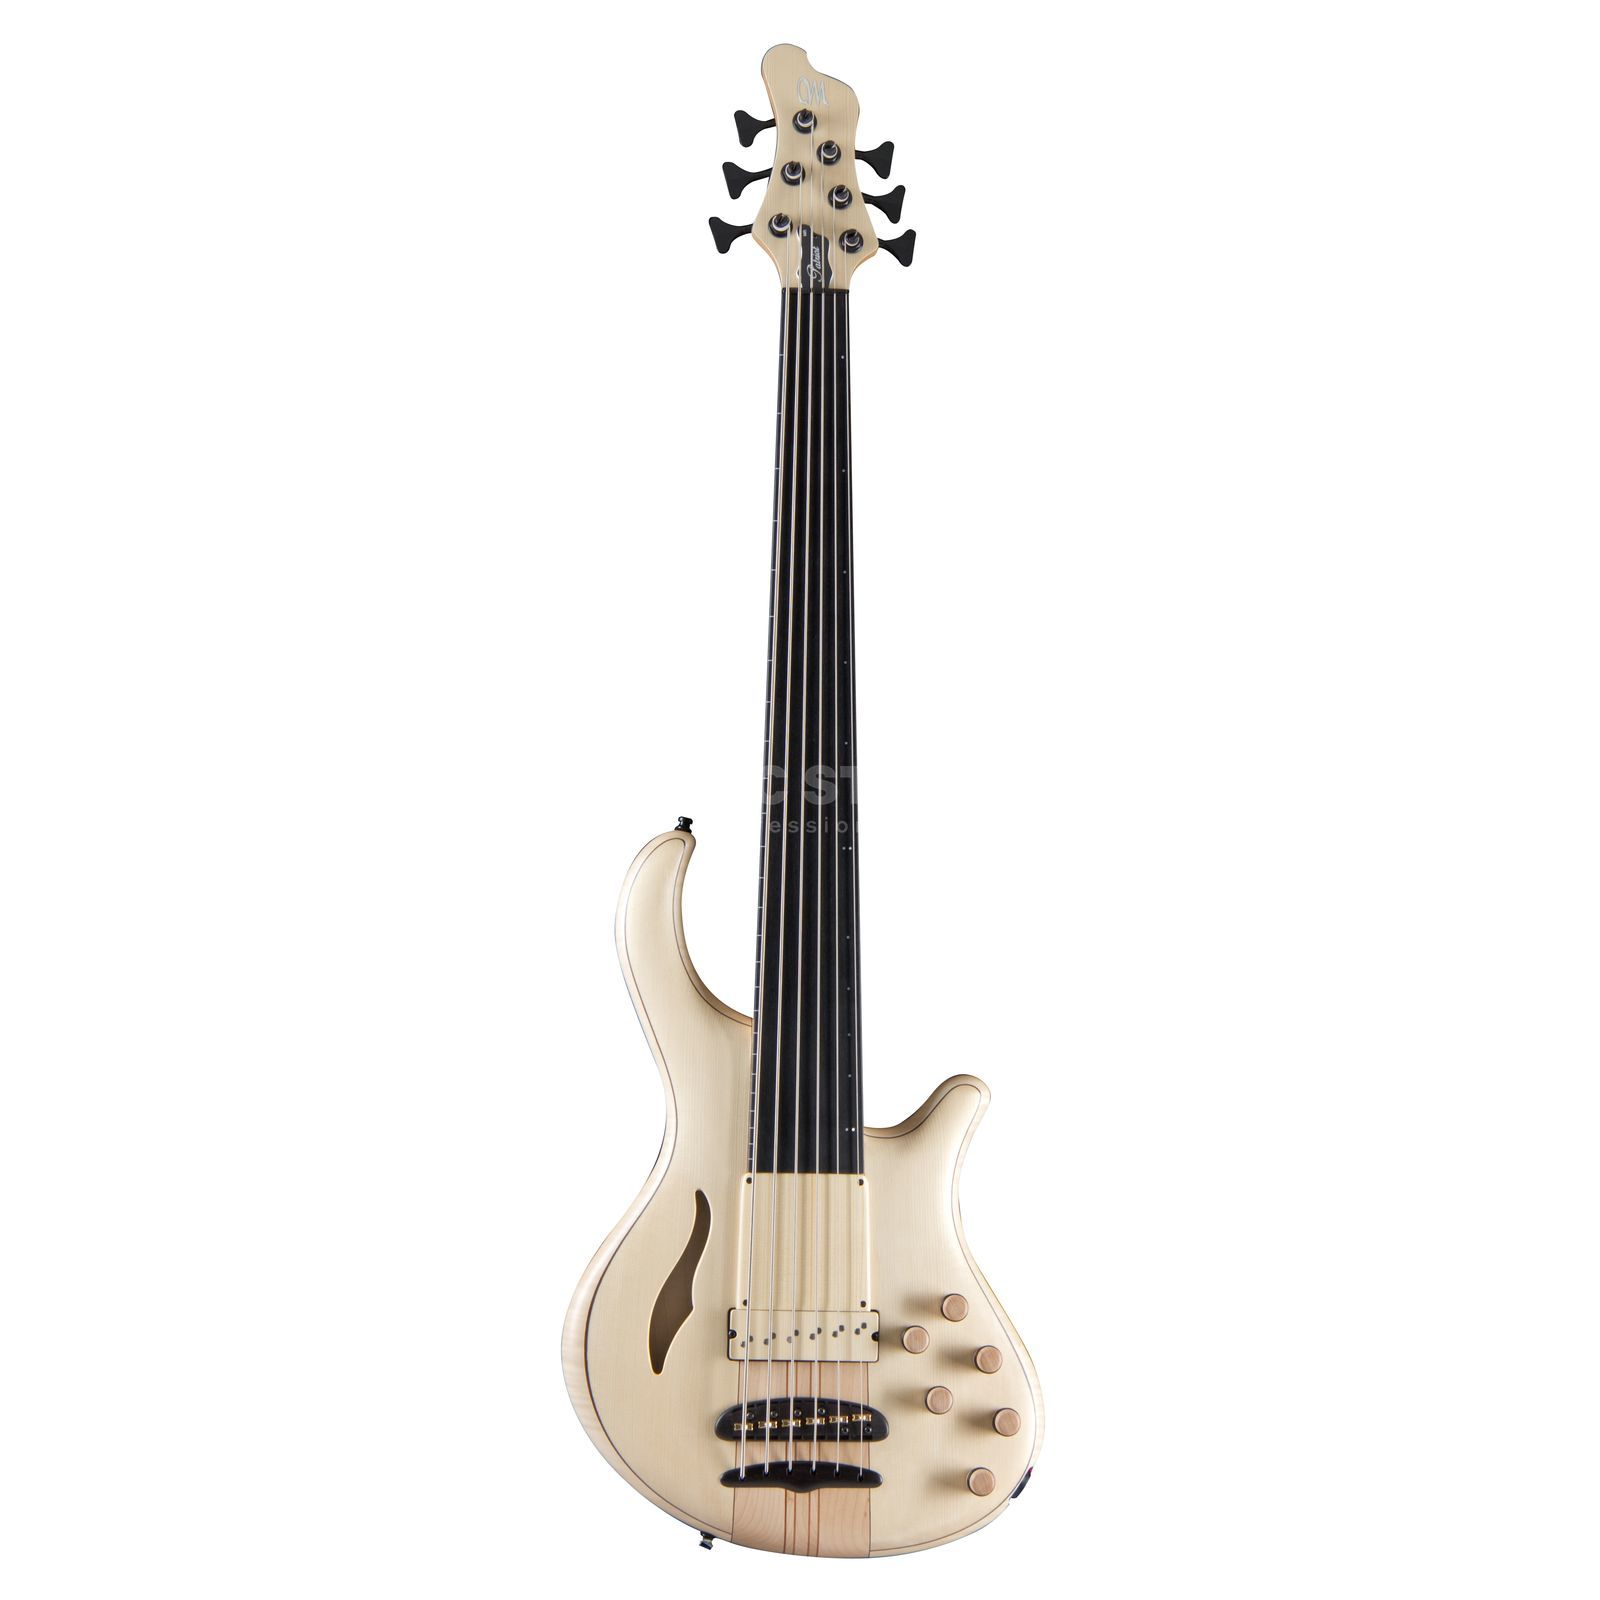 Mayones AS Patriot 6 MR Fretless NT CS Natural Immagine prodotto